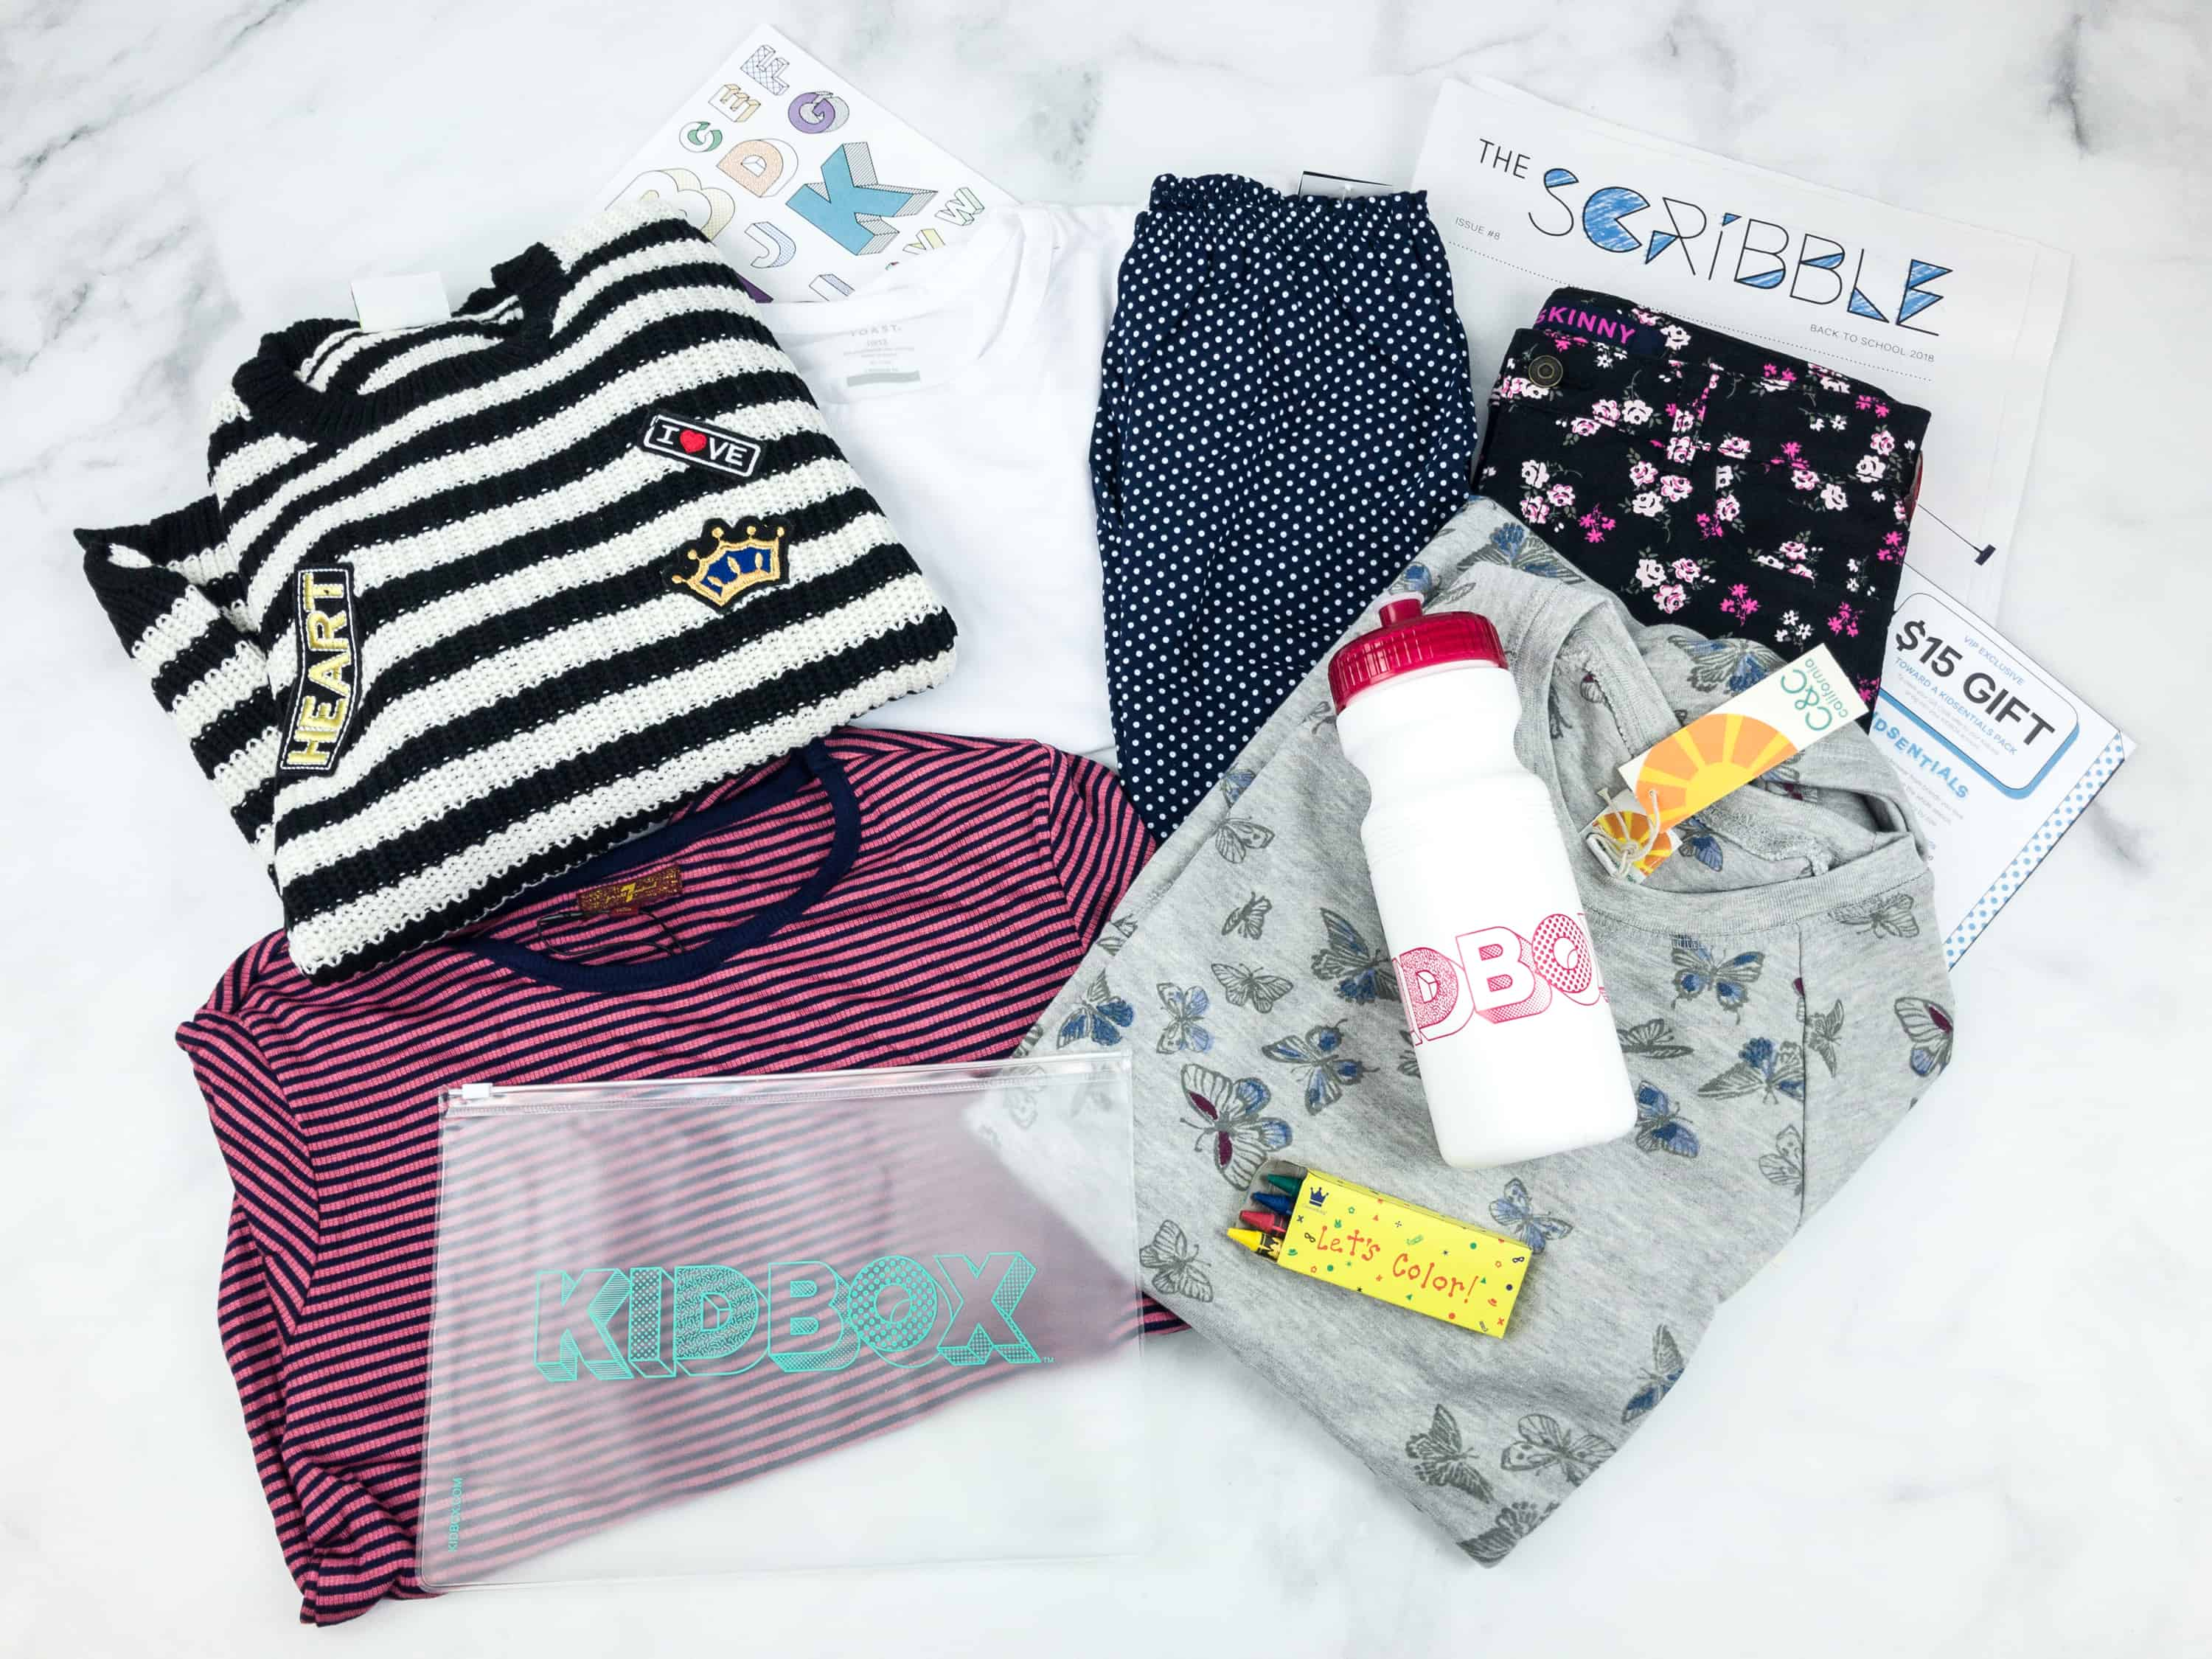 Kidbox Girls Fall 2018 Subscription Box Review & Coupon